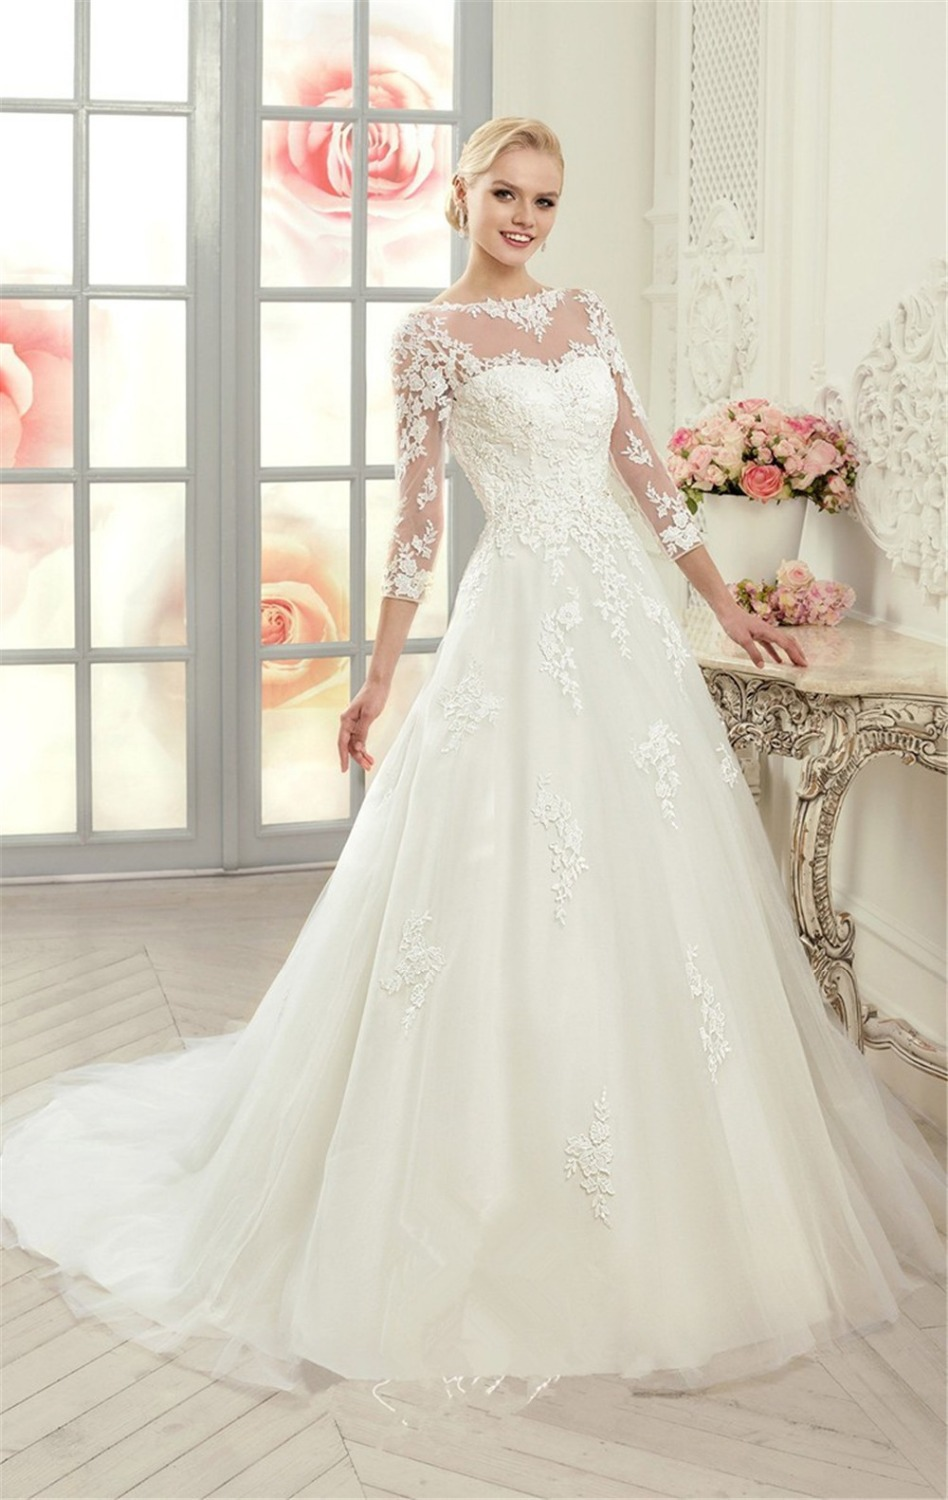 Mansa 2015 lace a line wedding dress with sleeves see for Kleinfeld wedding dresses with sleeves